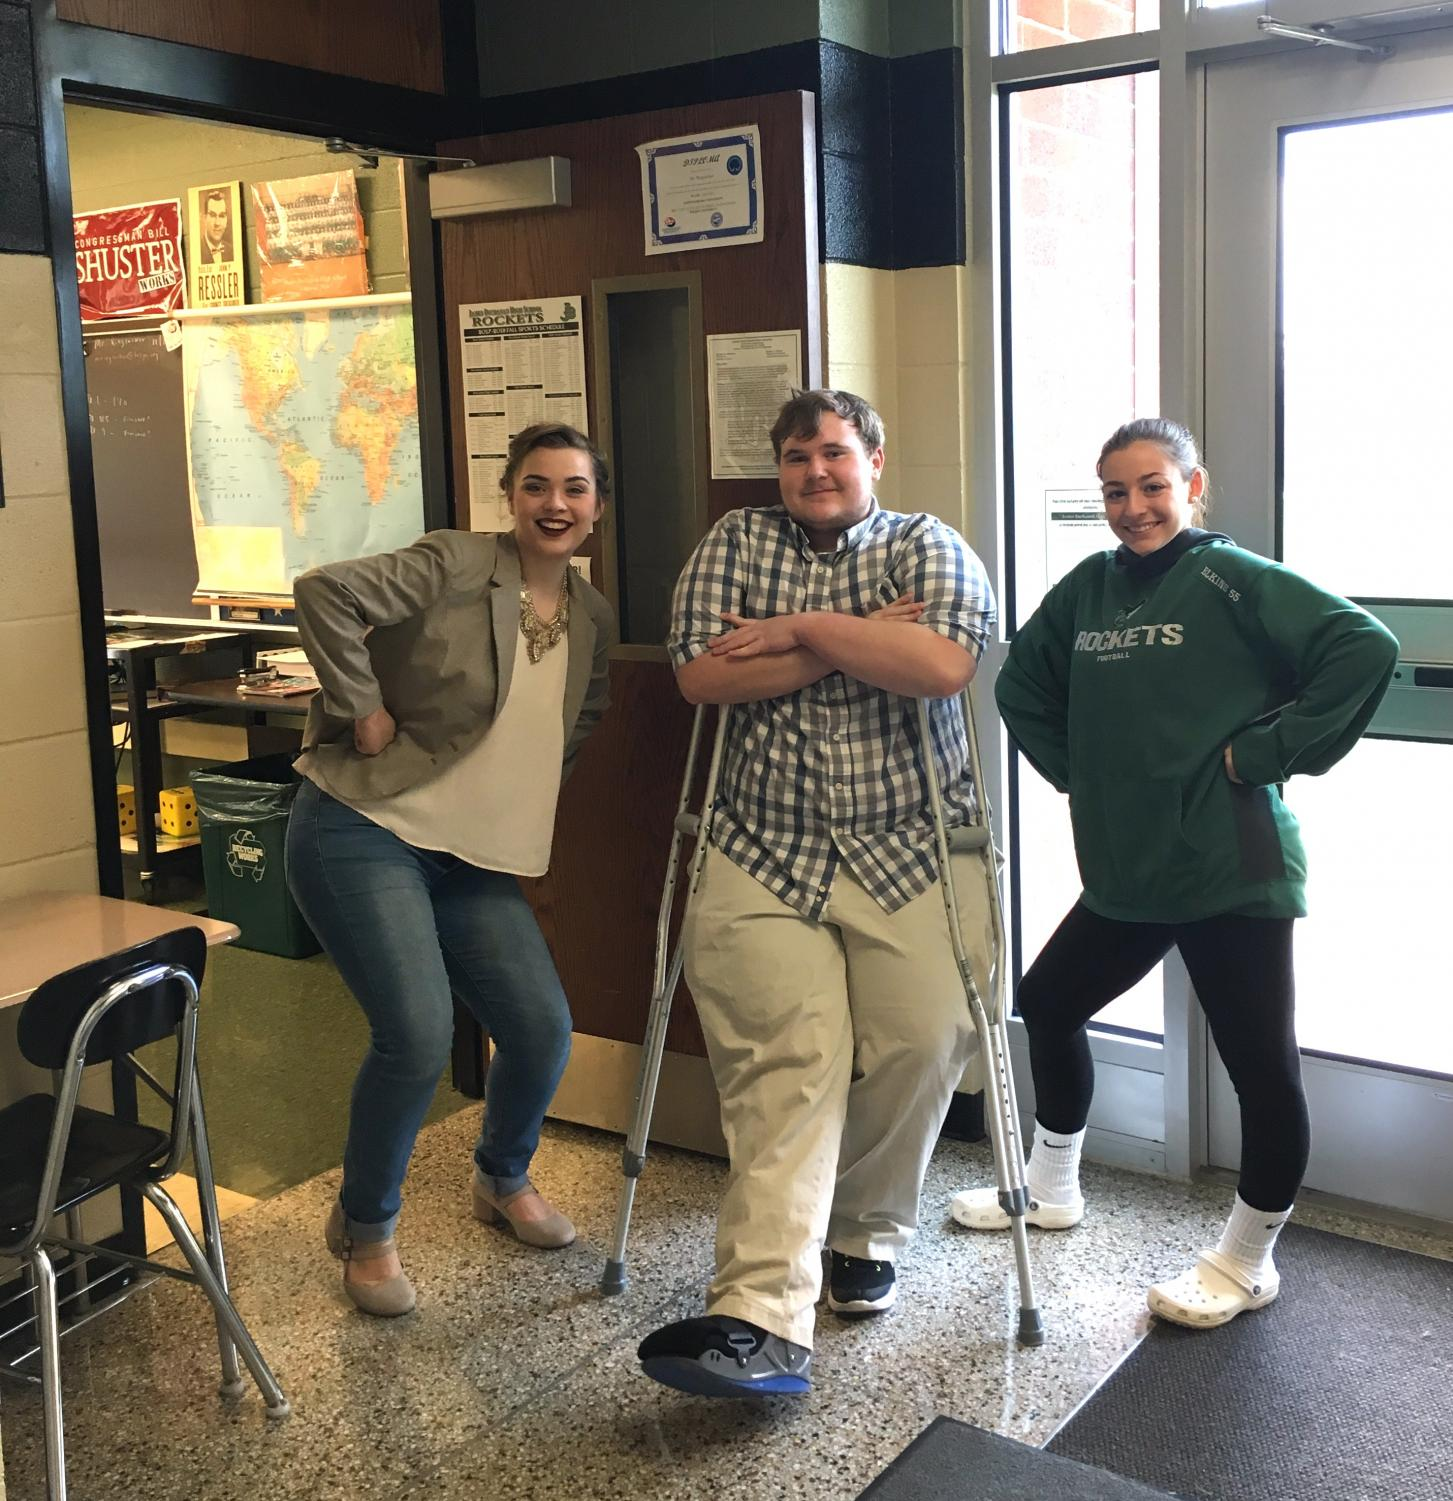 Standing at the door of 3:15 Student Ministries, Jacquelyn Wagaman (11), Dawson Thomas (11), and Harley Rife (11) welcome attendees and guests.